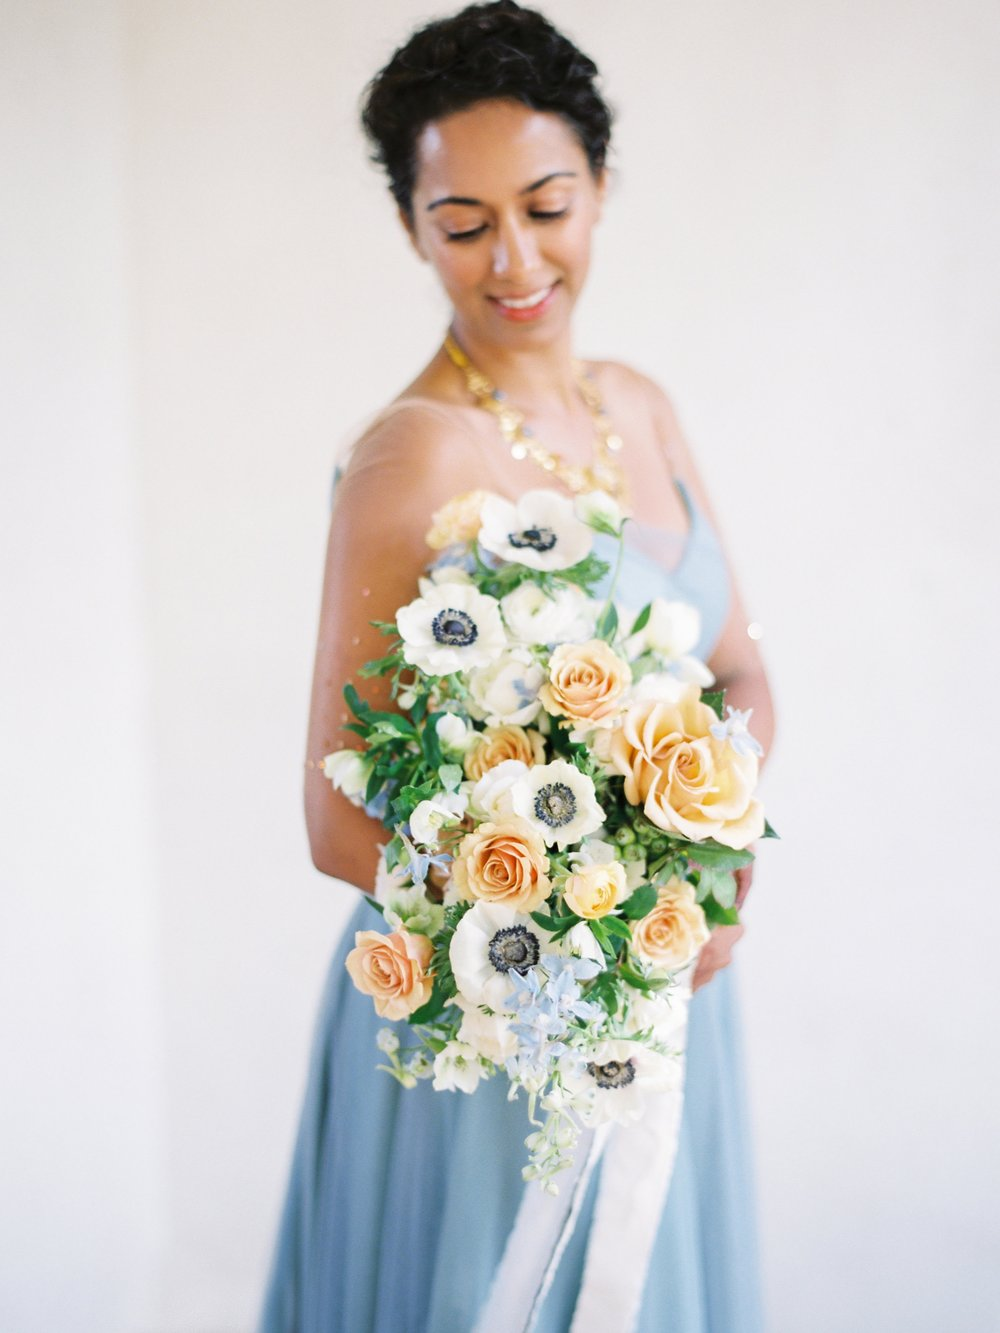 Elopements - —we offer elopement packages year-round for pick-up at our san luis obispo boutique.